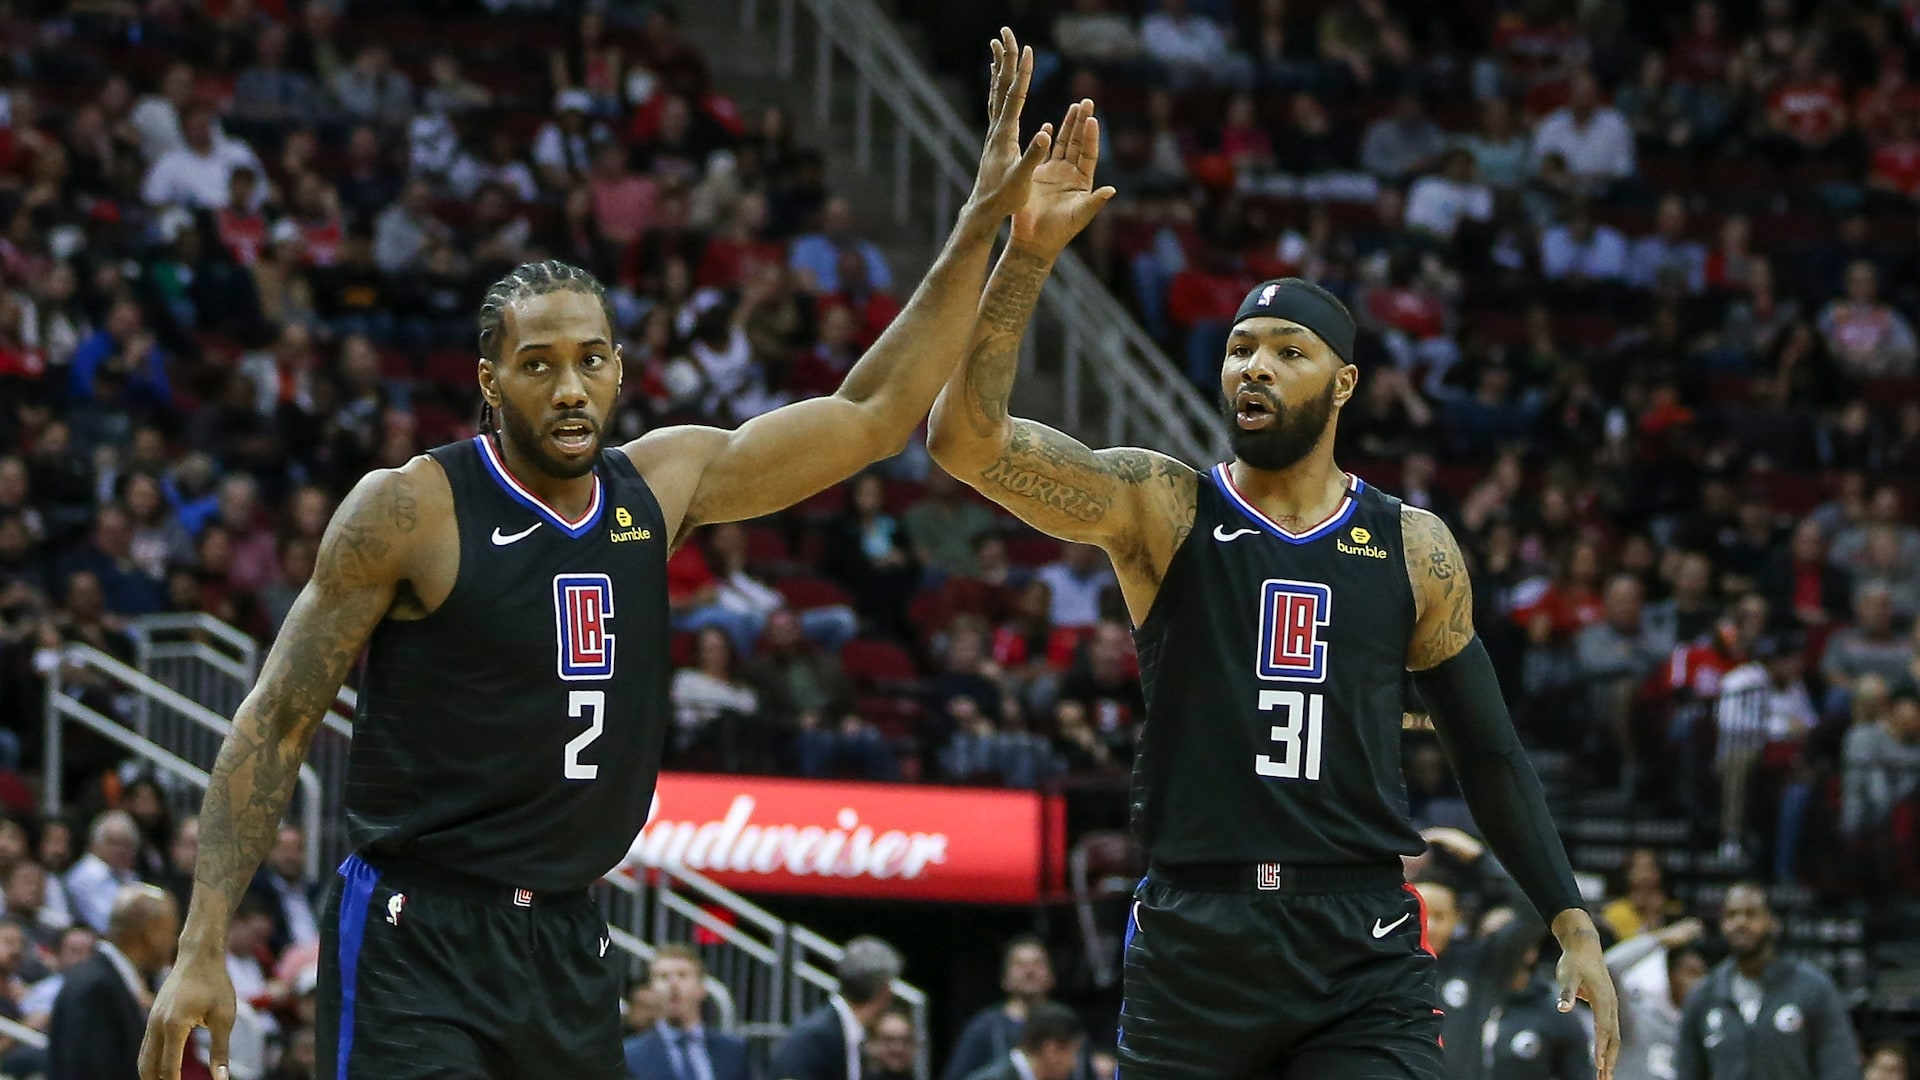 Size matters: Clippers neutralize Rockets' small-ball system